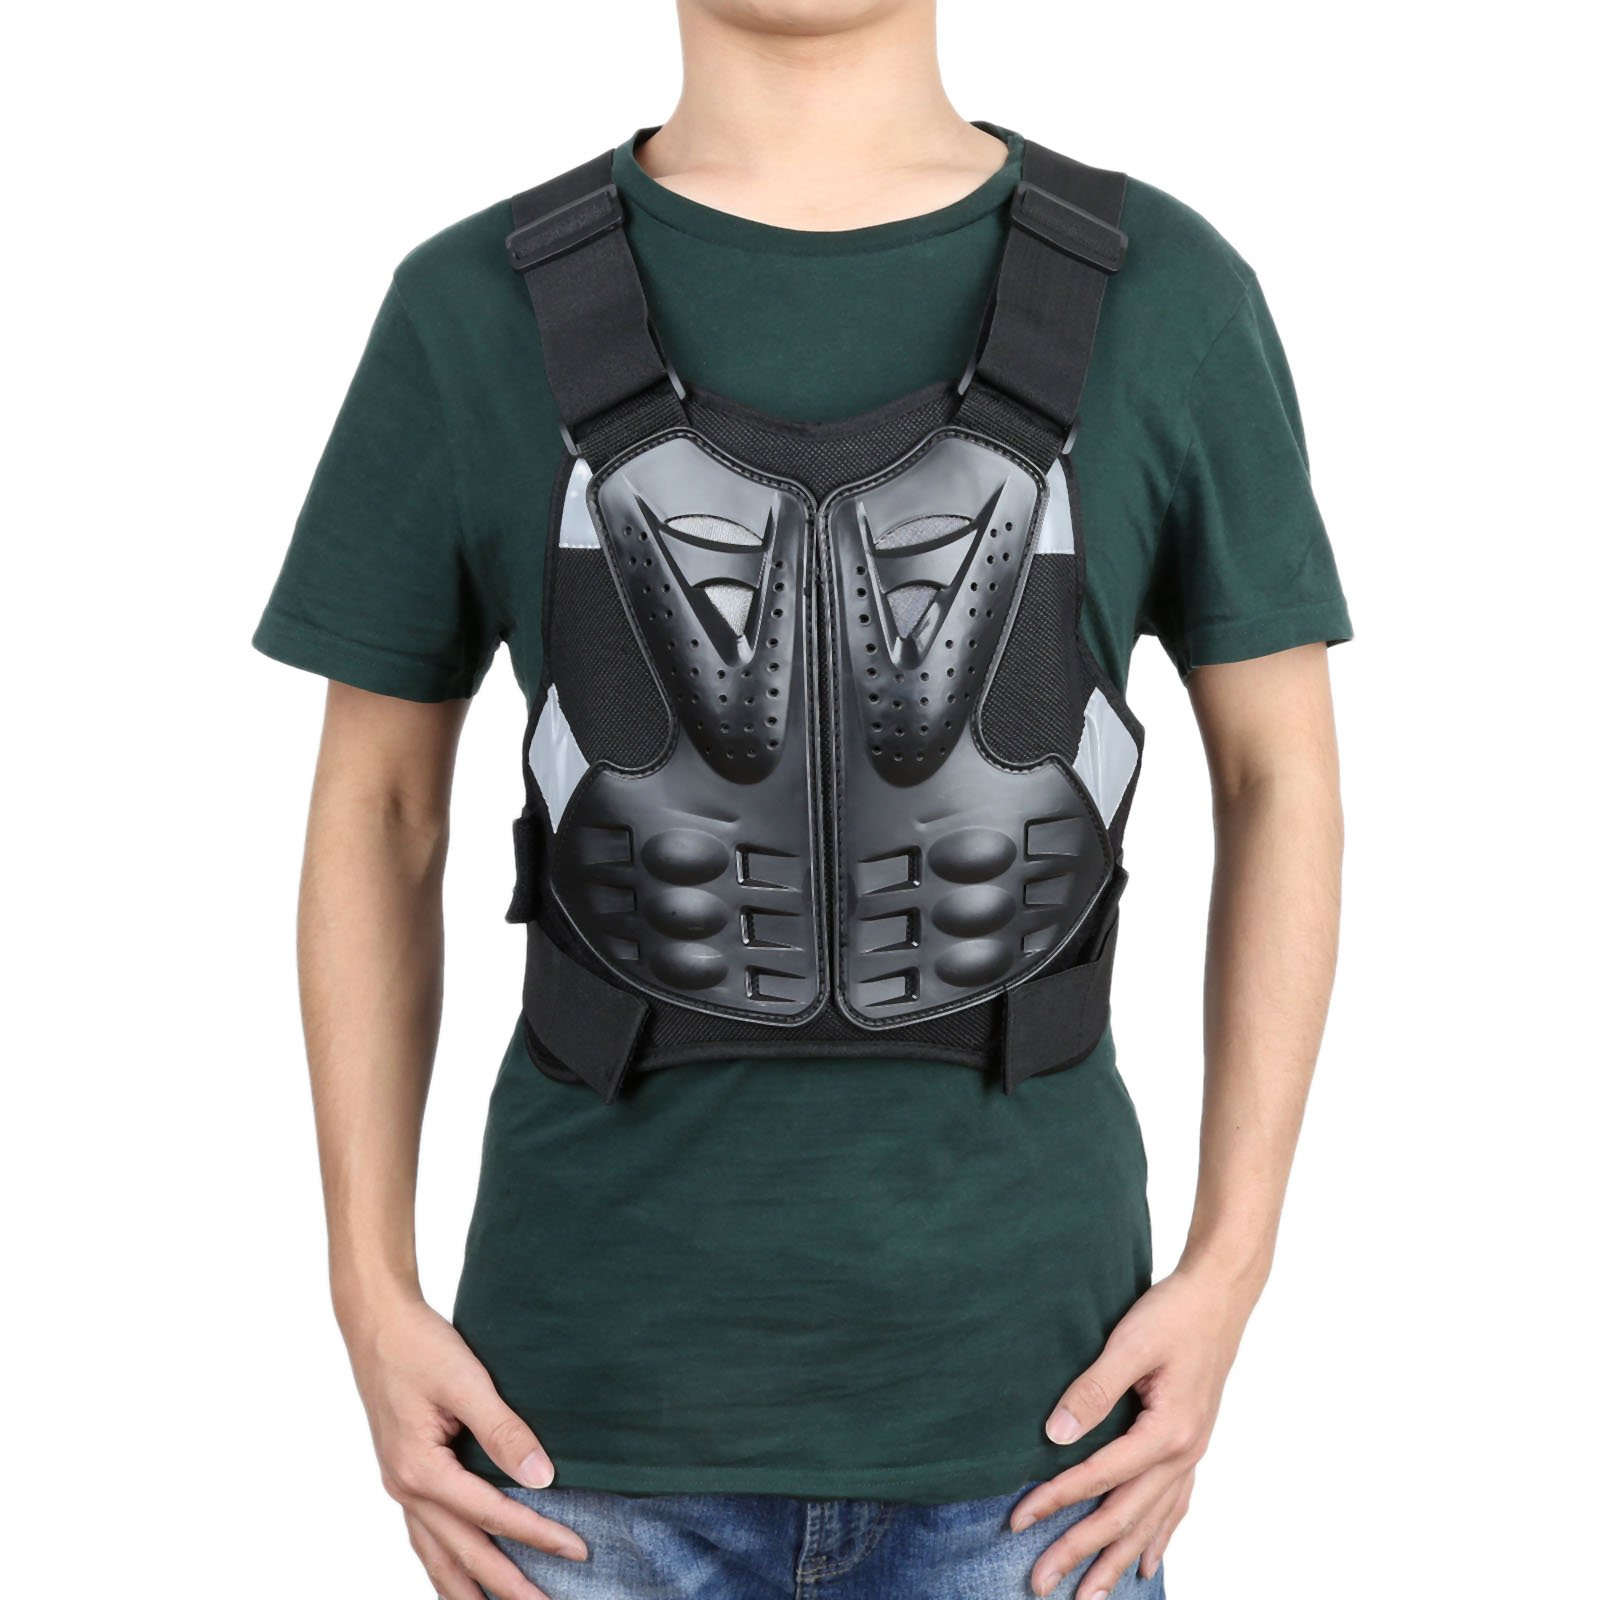 Carejoy Motorcycle Armor Vest Chest Back Spine Protector, Motocross Off-Road Racing Anti-fall Gear Body Guard